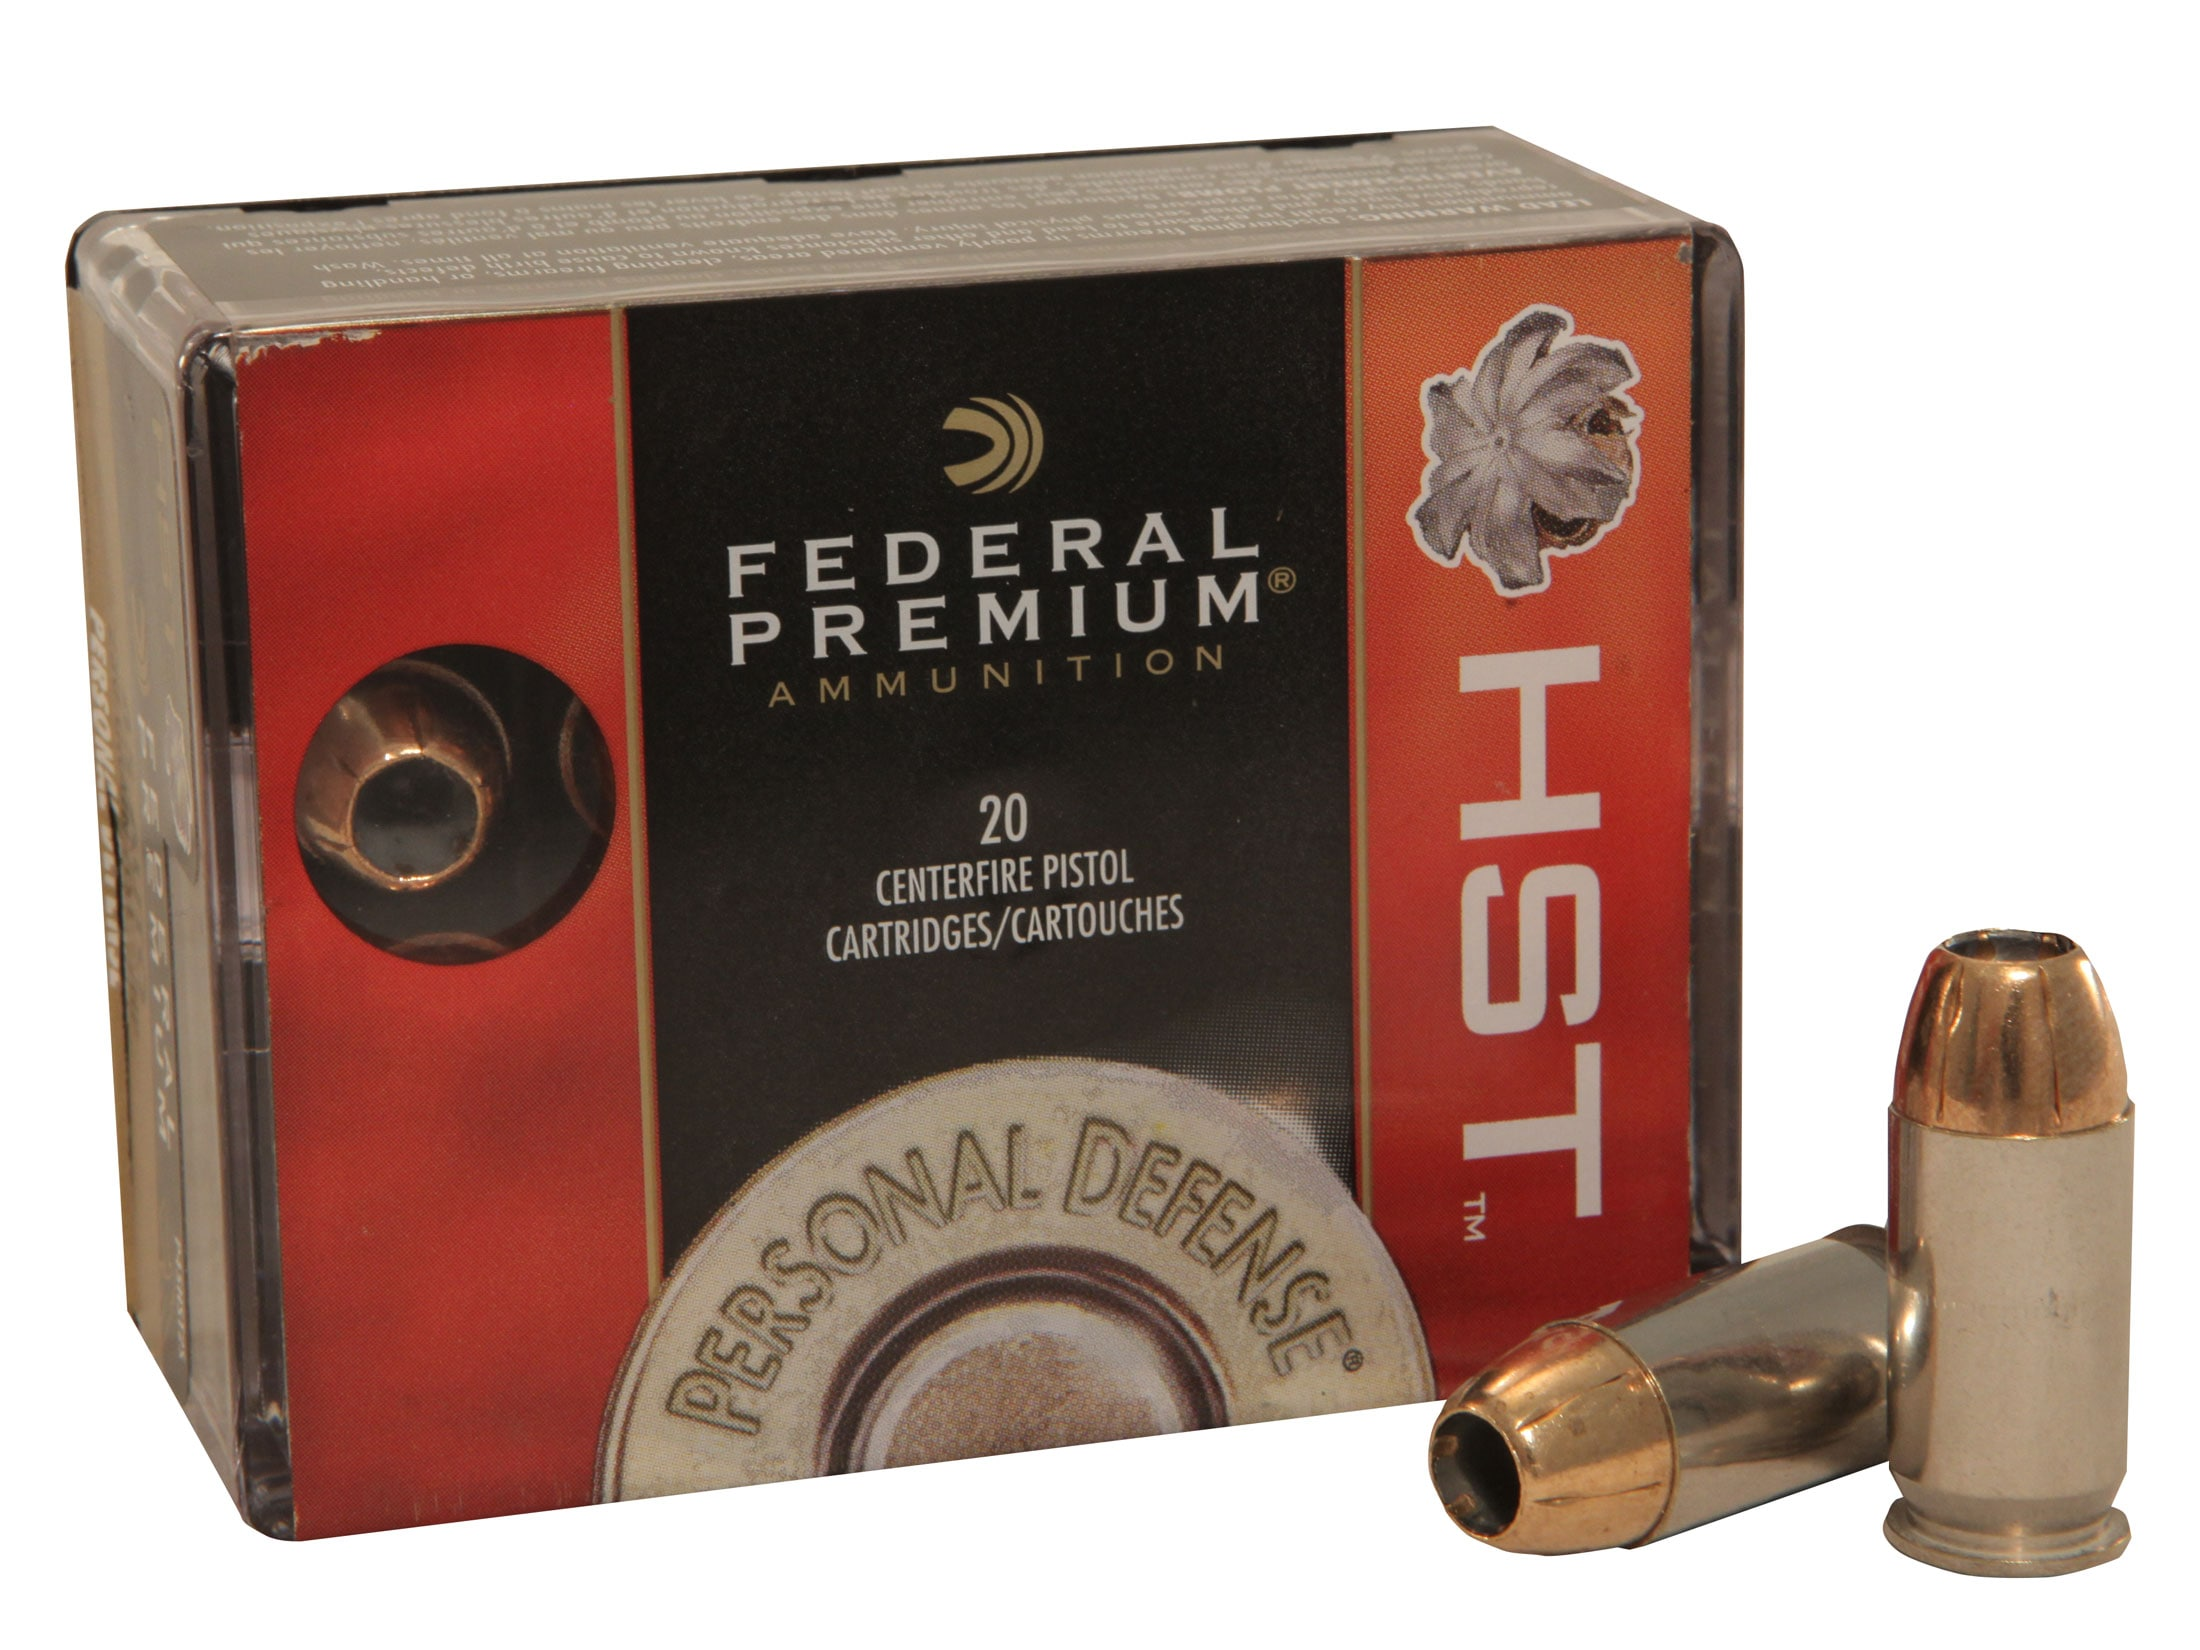 Federal Premium Personal Defense Ammo 380 ACP 99 Grain HST Jacketed